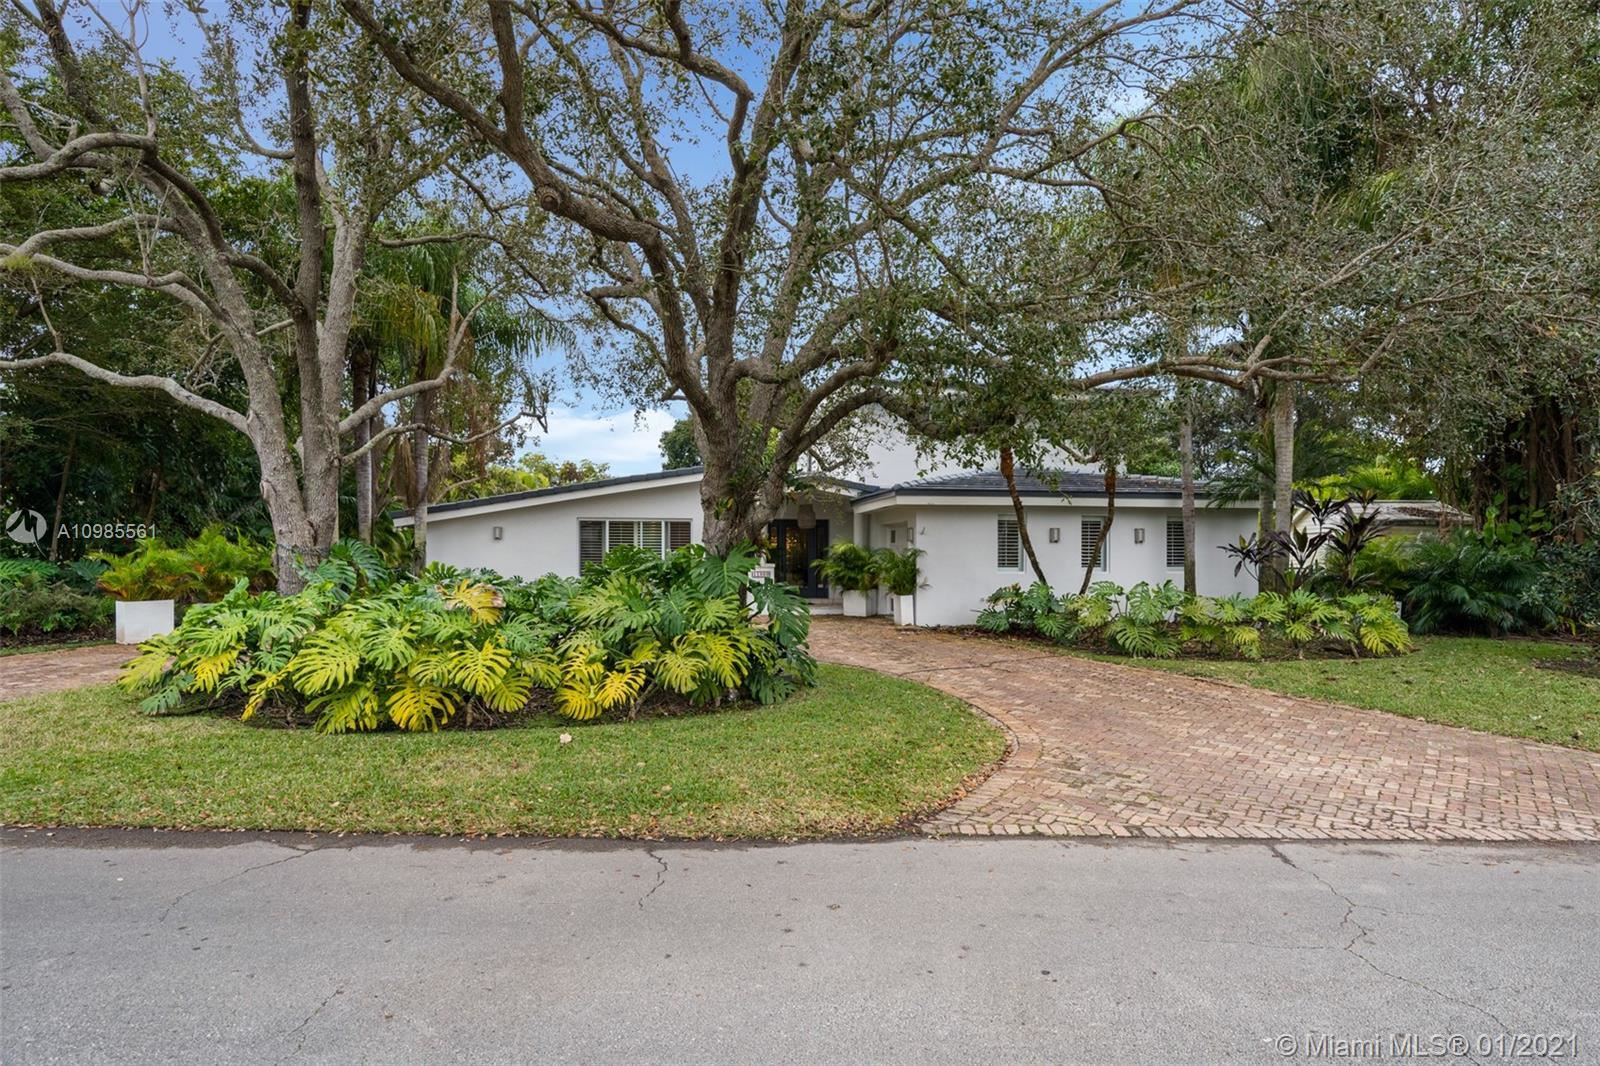 11900 SW 70th Ave, Pinecrest, FL 33156 - #: A10985561